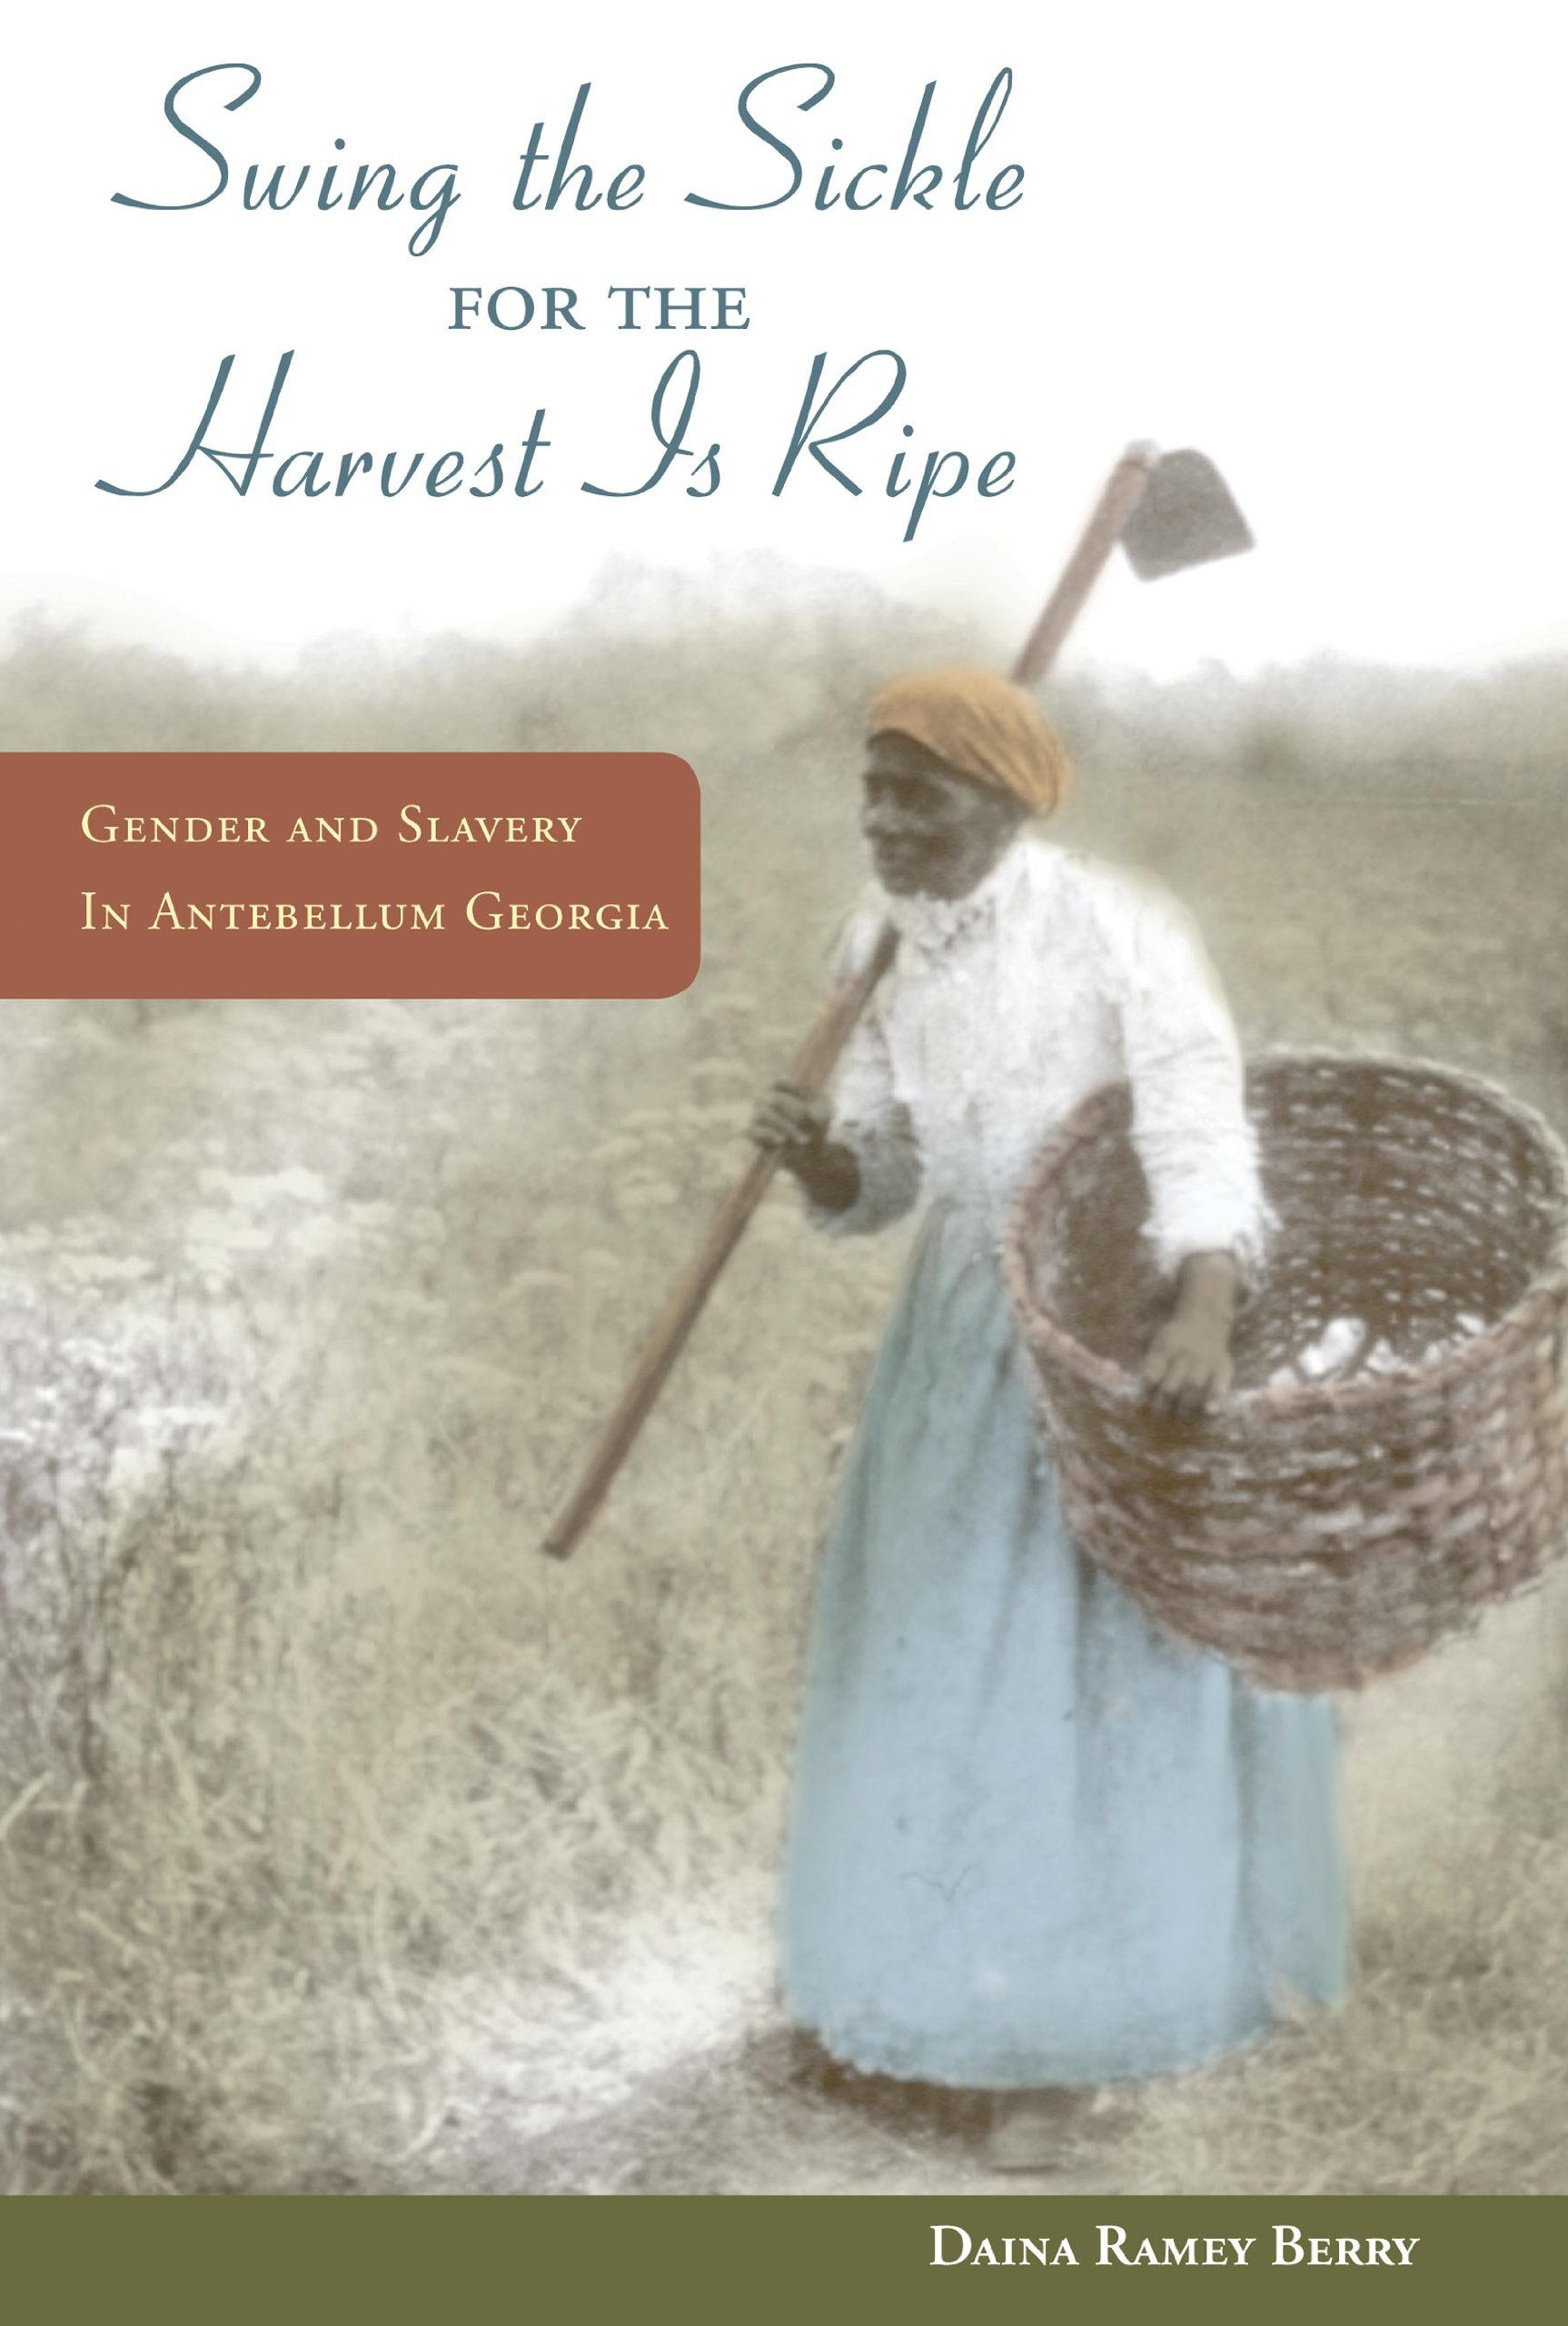 "Read Online ""Swing the Sickle for the Harvest Is Ripe"": Gender and Slavery in Antebellum Georgia (Women in American History) PDF"